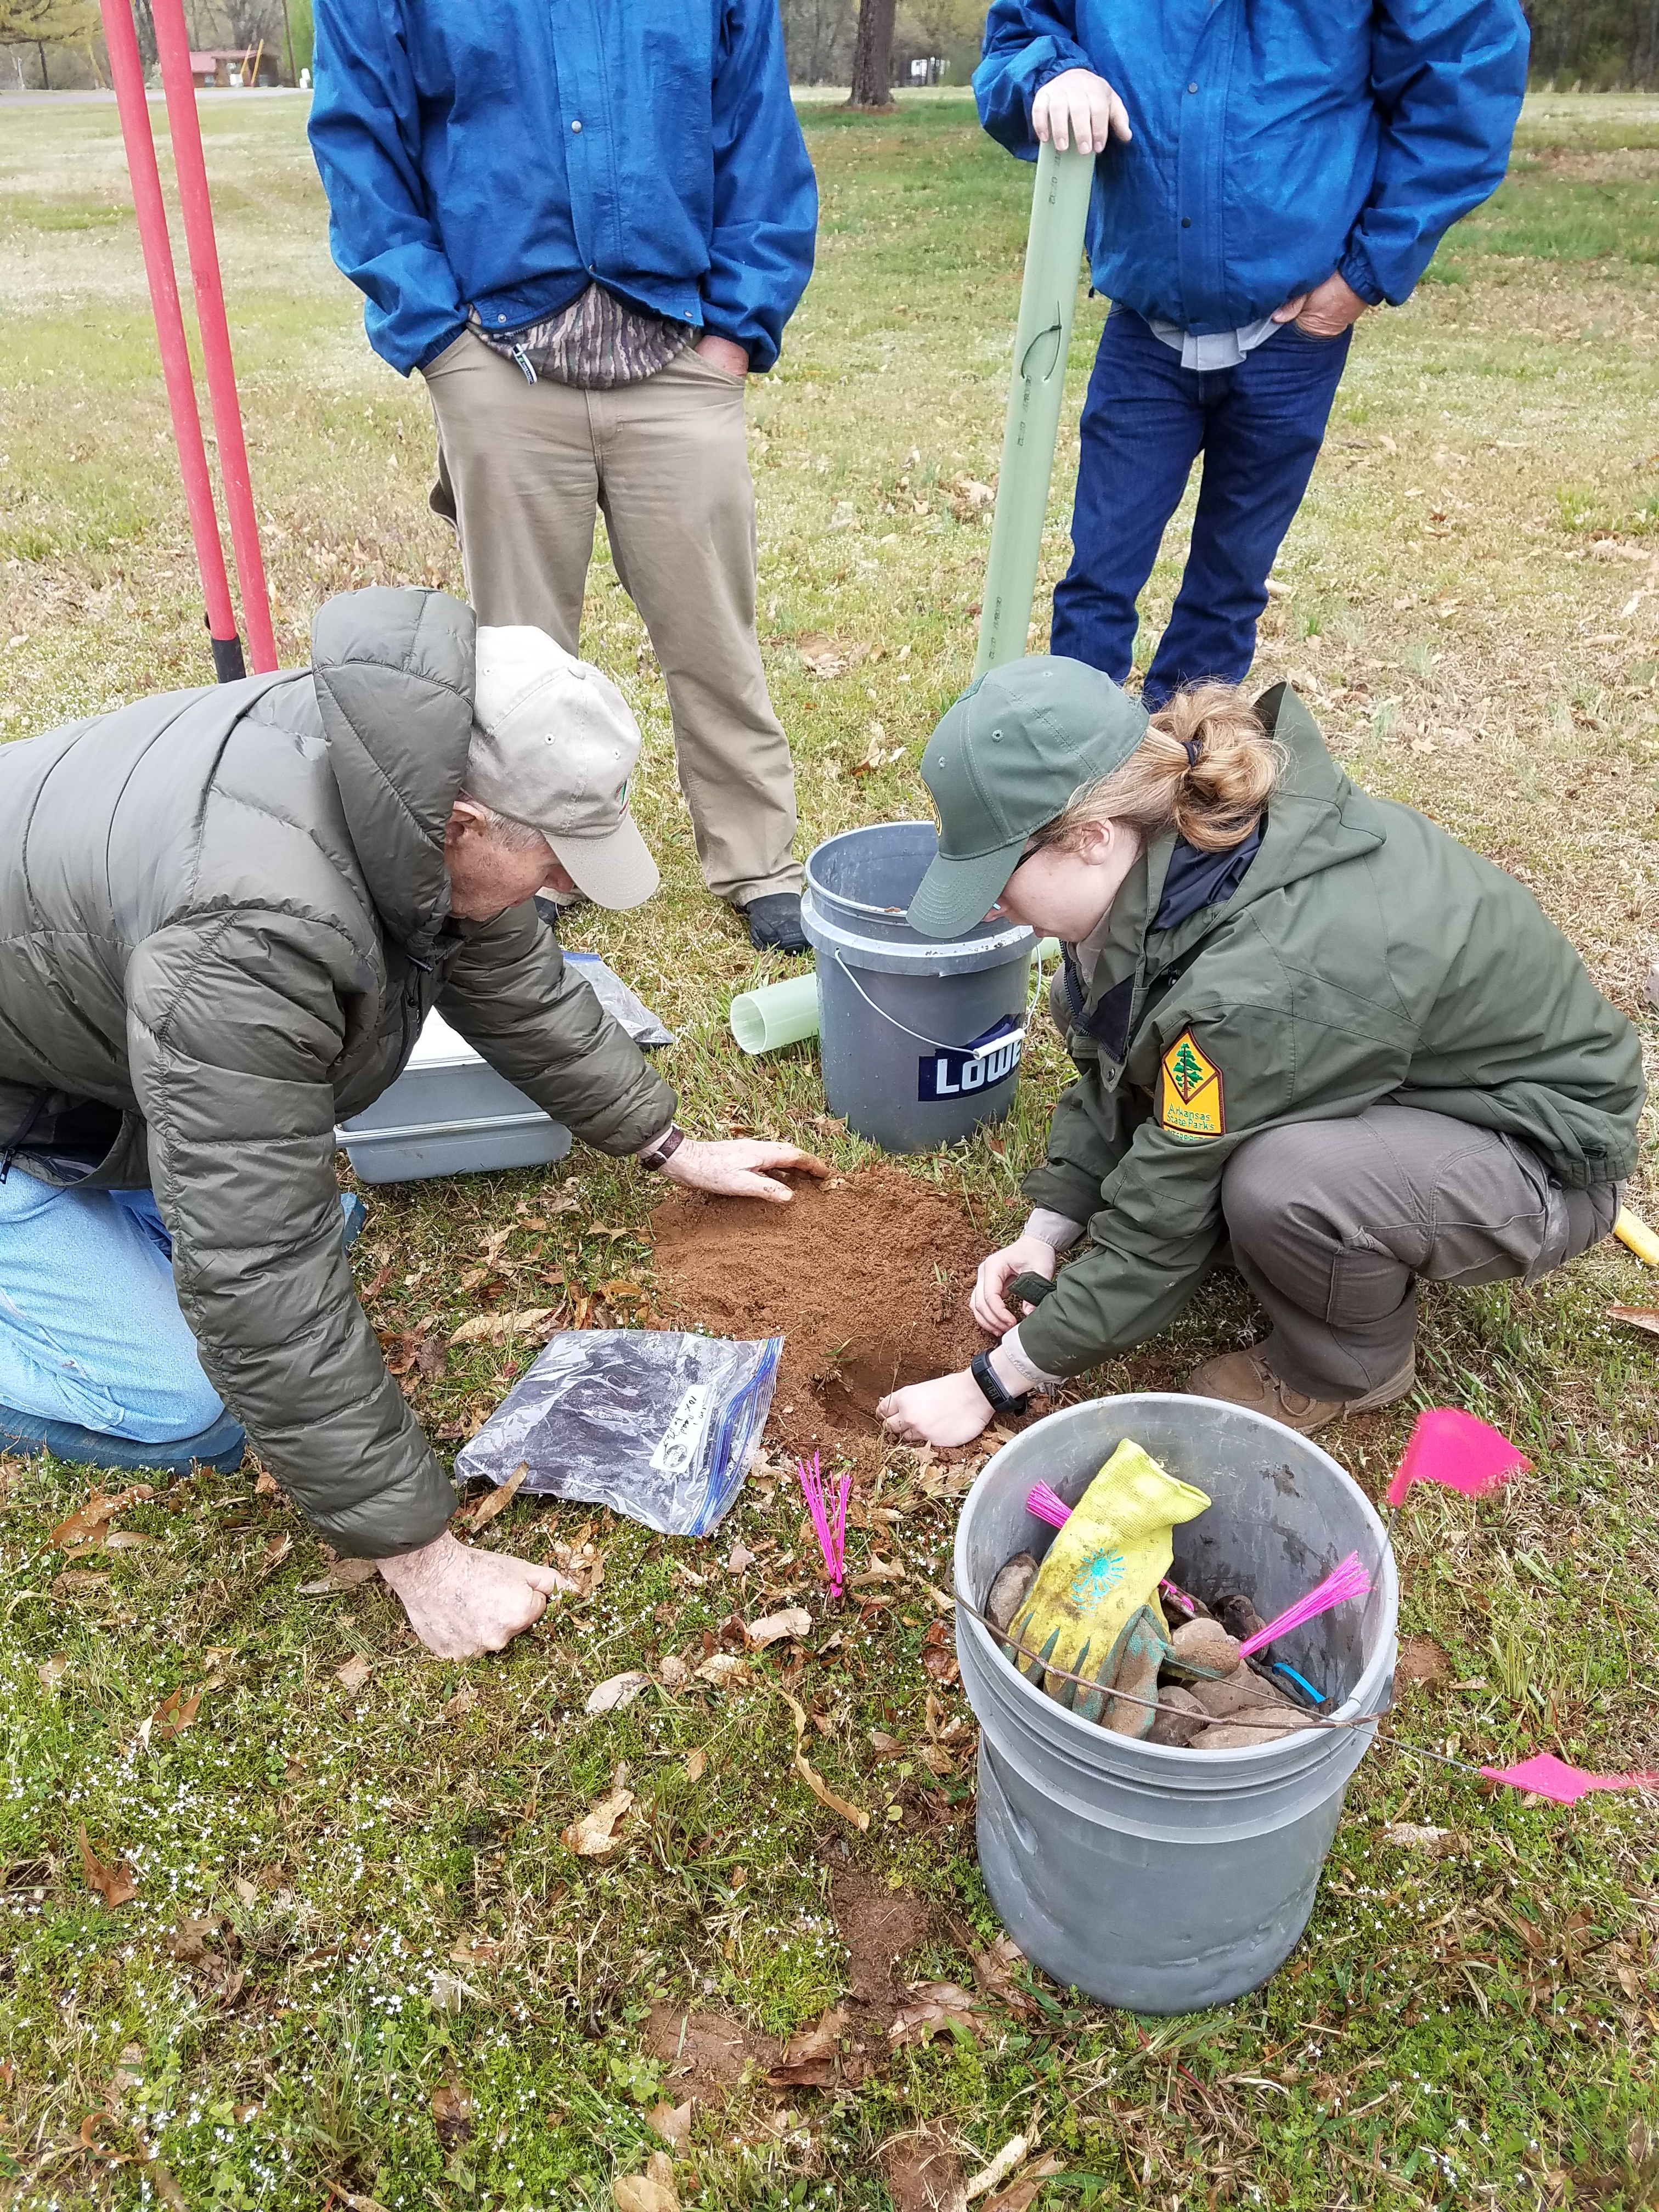 Park Interpreter Megan Ayres plants an Ozark chinquapin seed with the assistance of an OCF member at Lake Dardanelle State Park, while others observe.